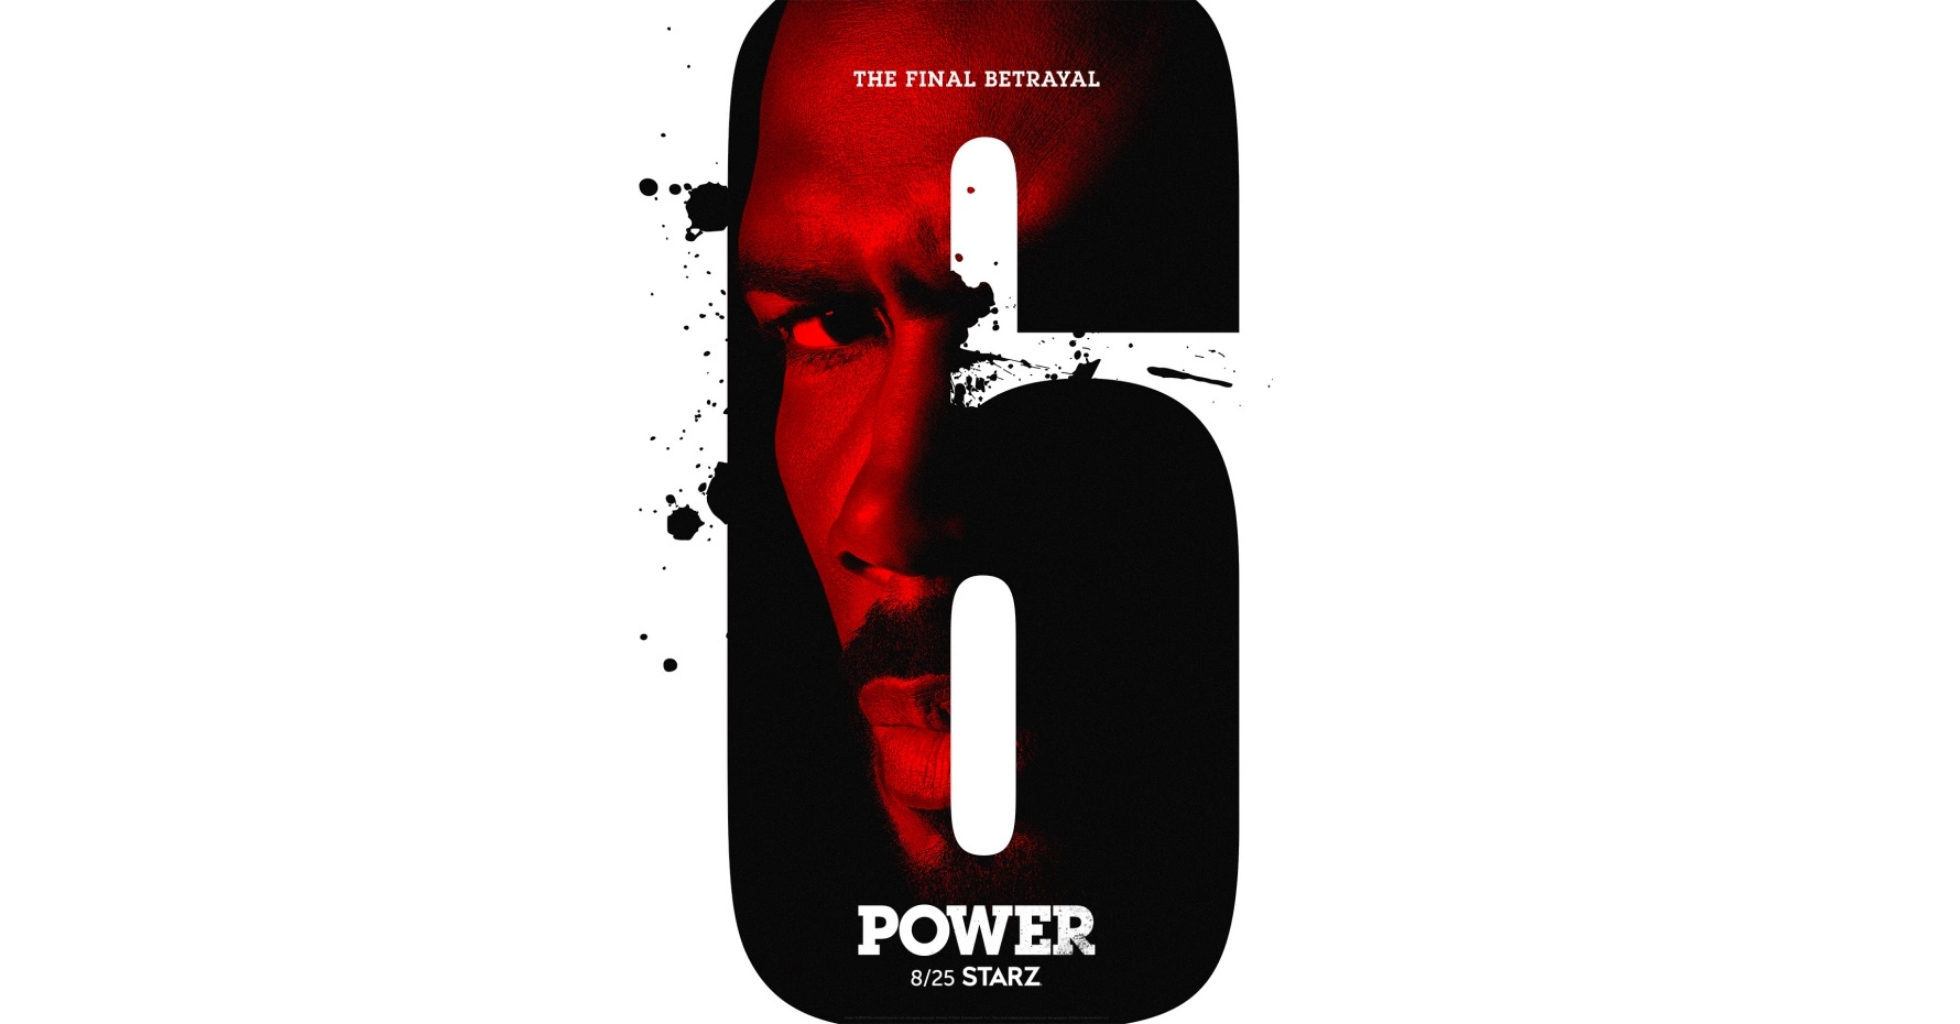 Power Season 6 - Check out What To Expect